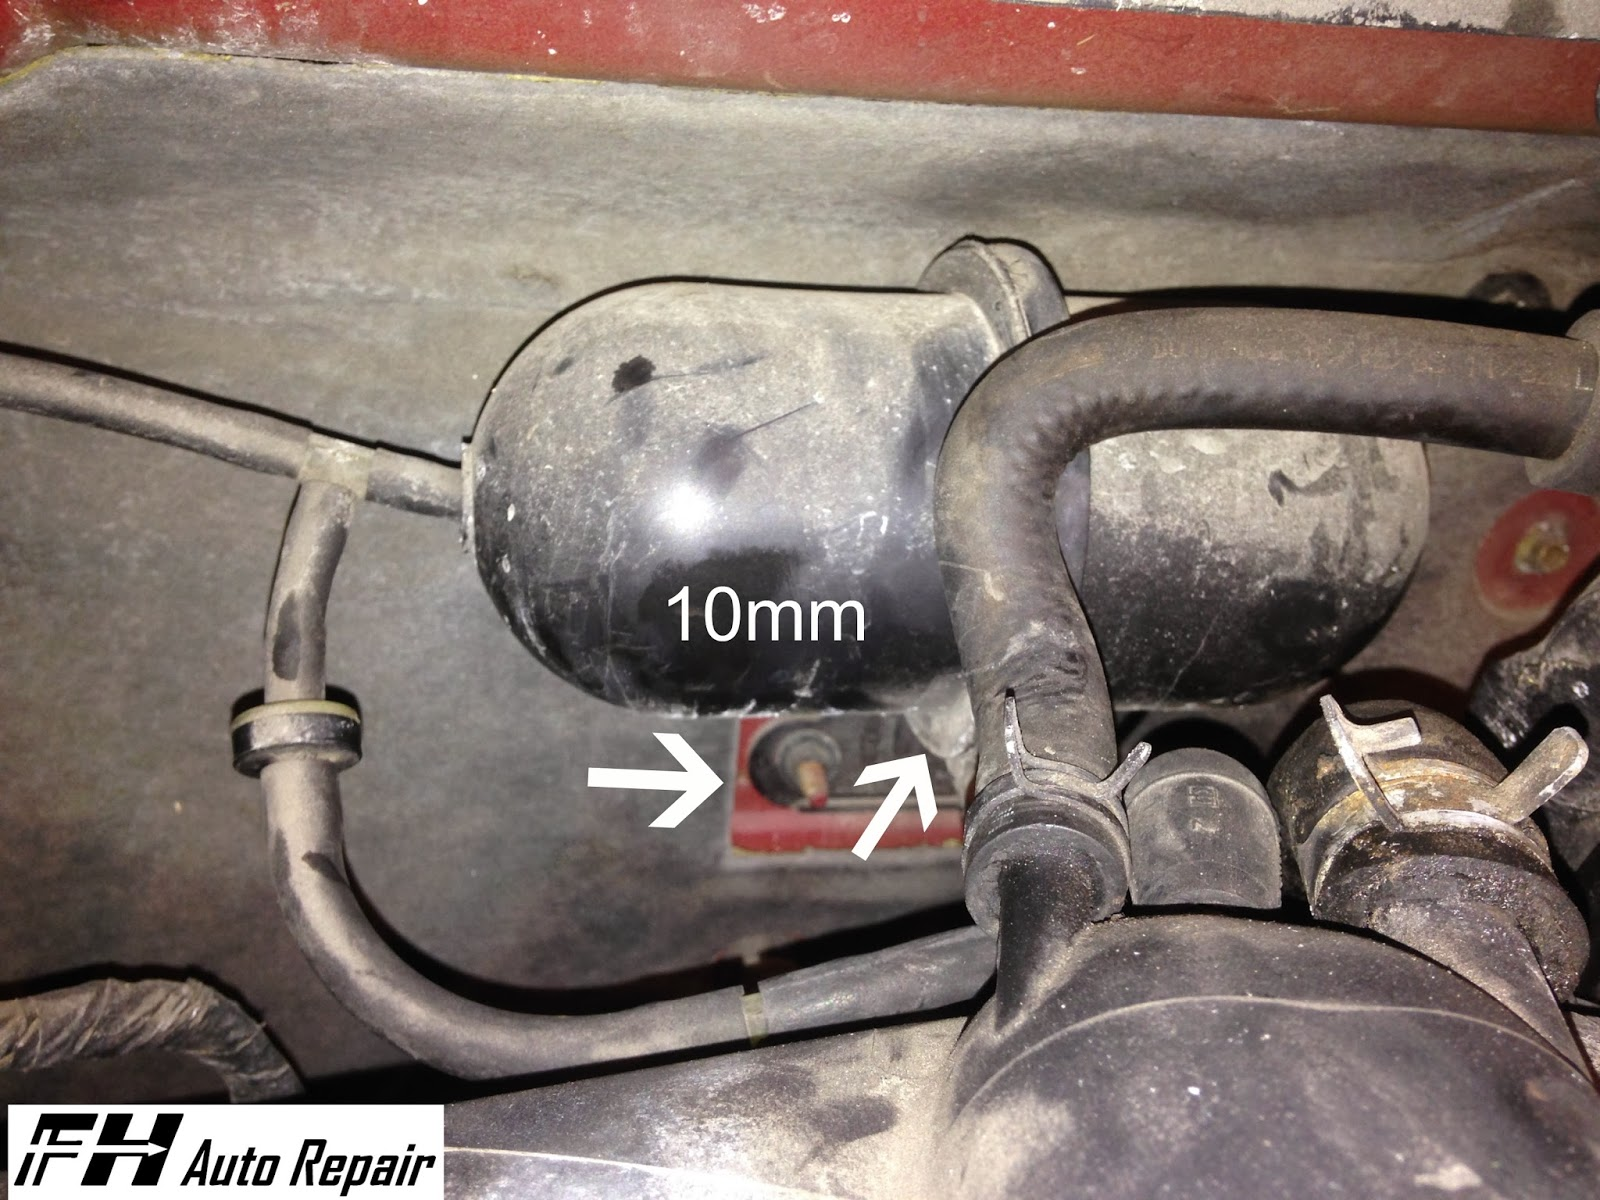 Fh Auto Repair How To Replace The Alternator On A 2001 2004 Ford 2003 Escape V6 Engine Diagram One More Plug Down Deep Between Firewall And Is Green That Must Be Unplugged Pulled Side